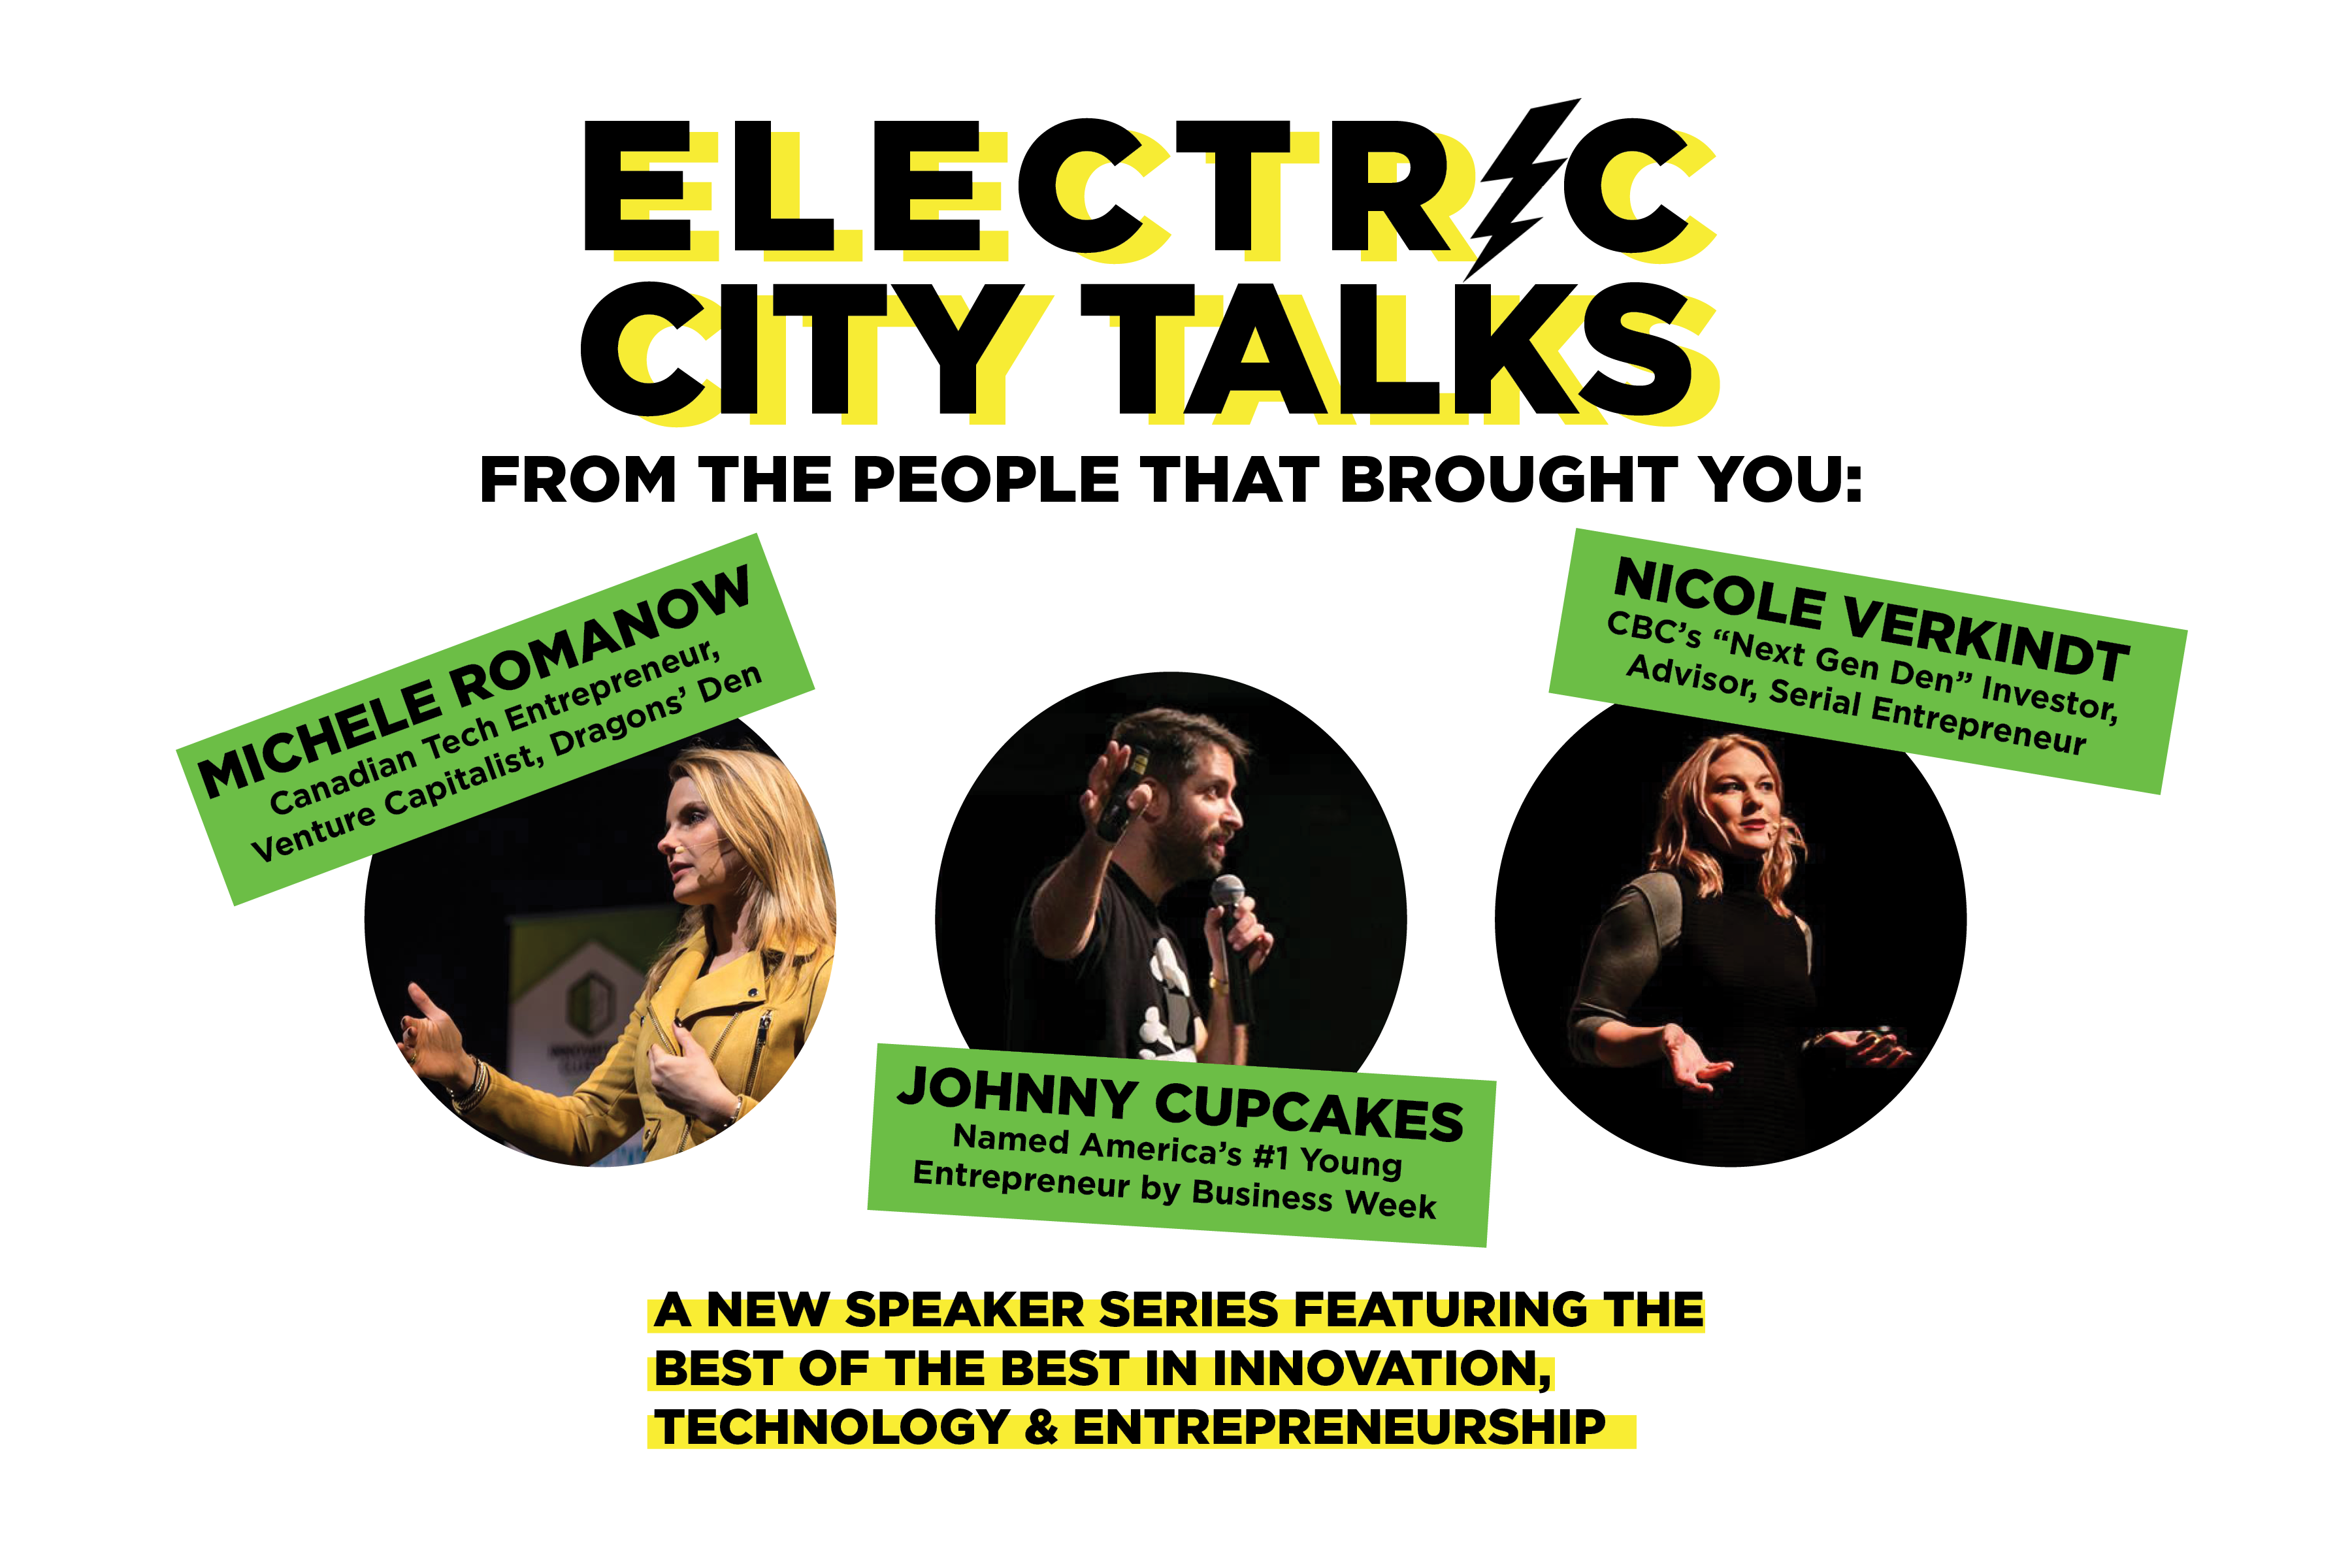 """Innovation Cluster Launches """"Electric City Talks"""", a Speaker Series Featuring Global Disruptors in Innovation, Technology and Entrepreneurship"""